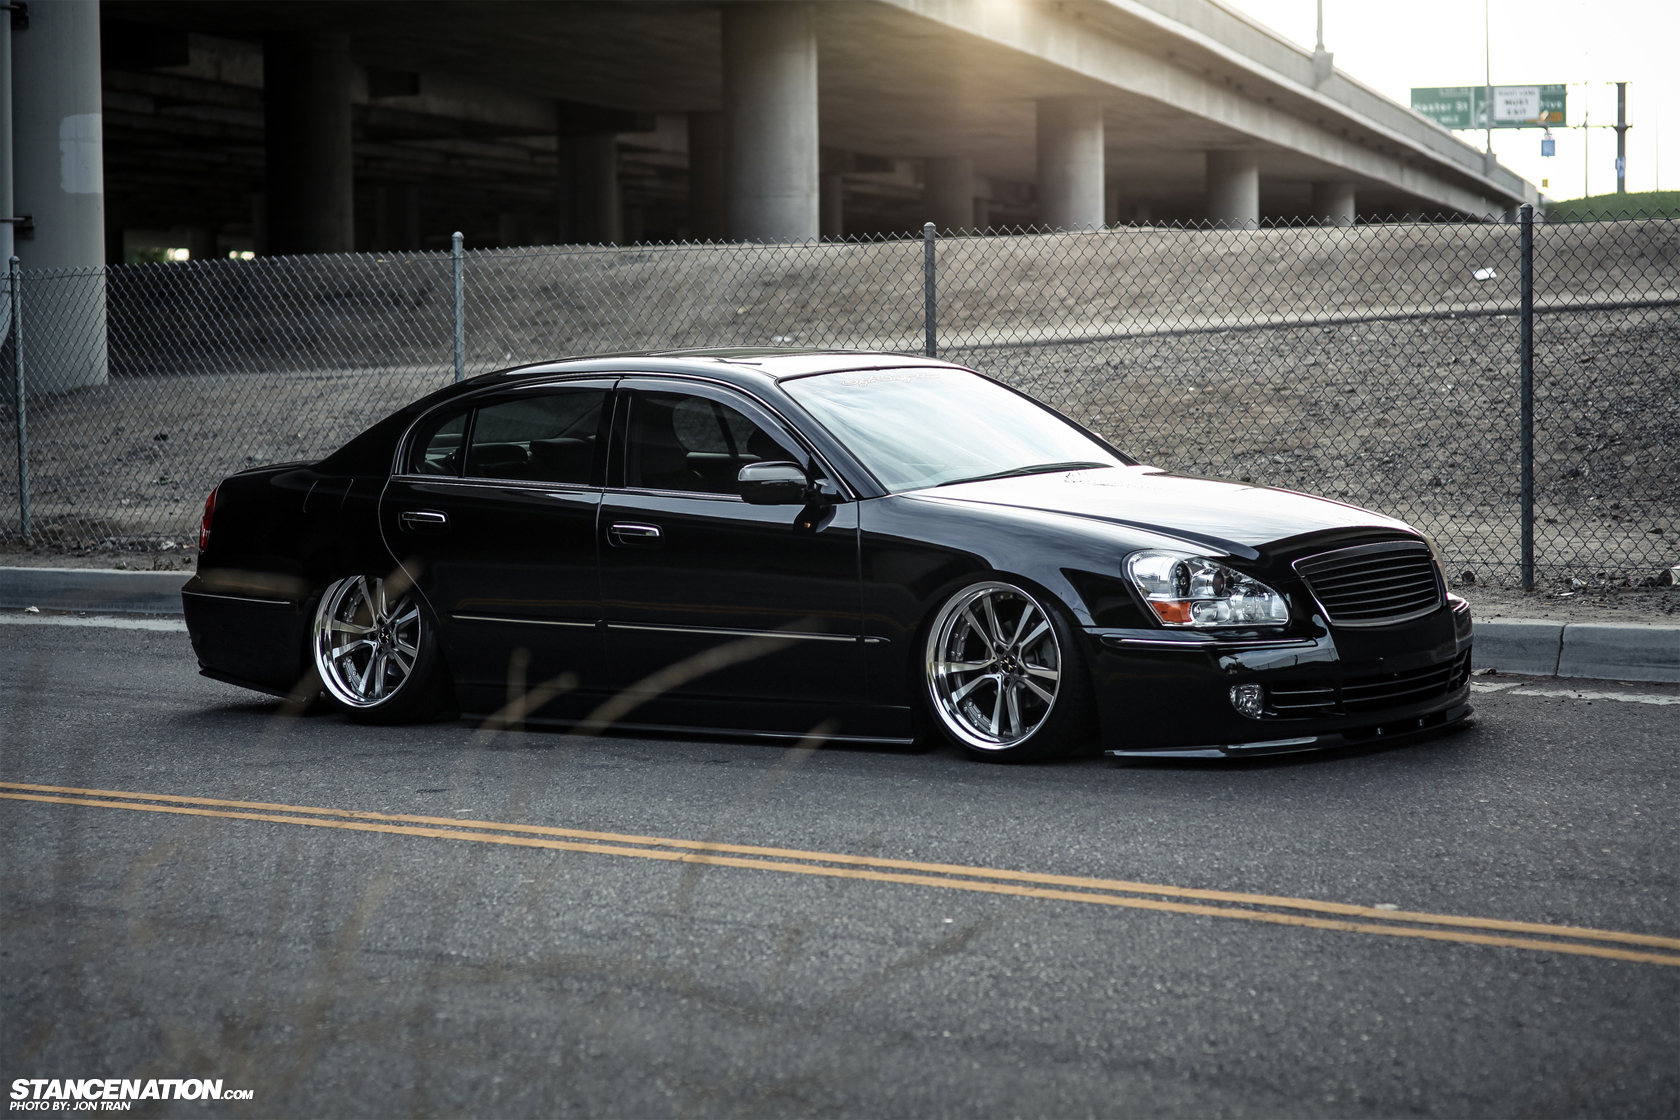 Classy Does It Matthew S Slammed Infiniti Q45